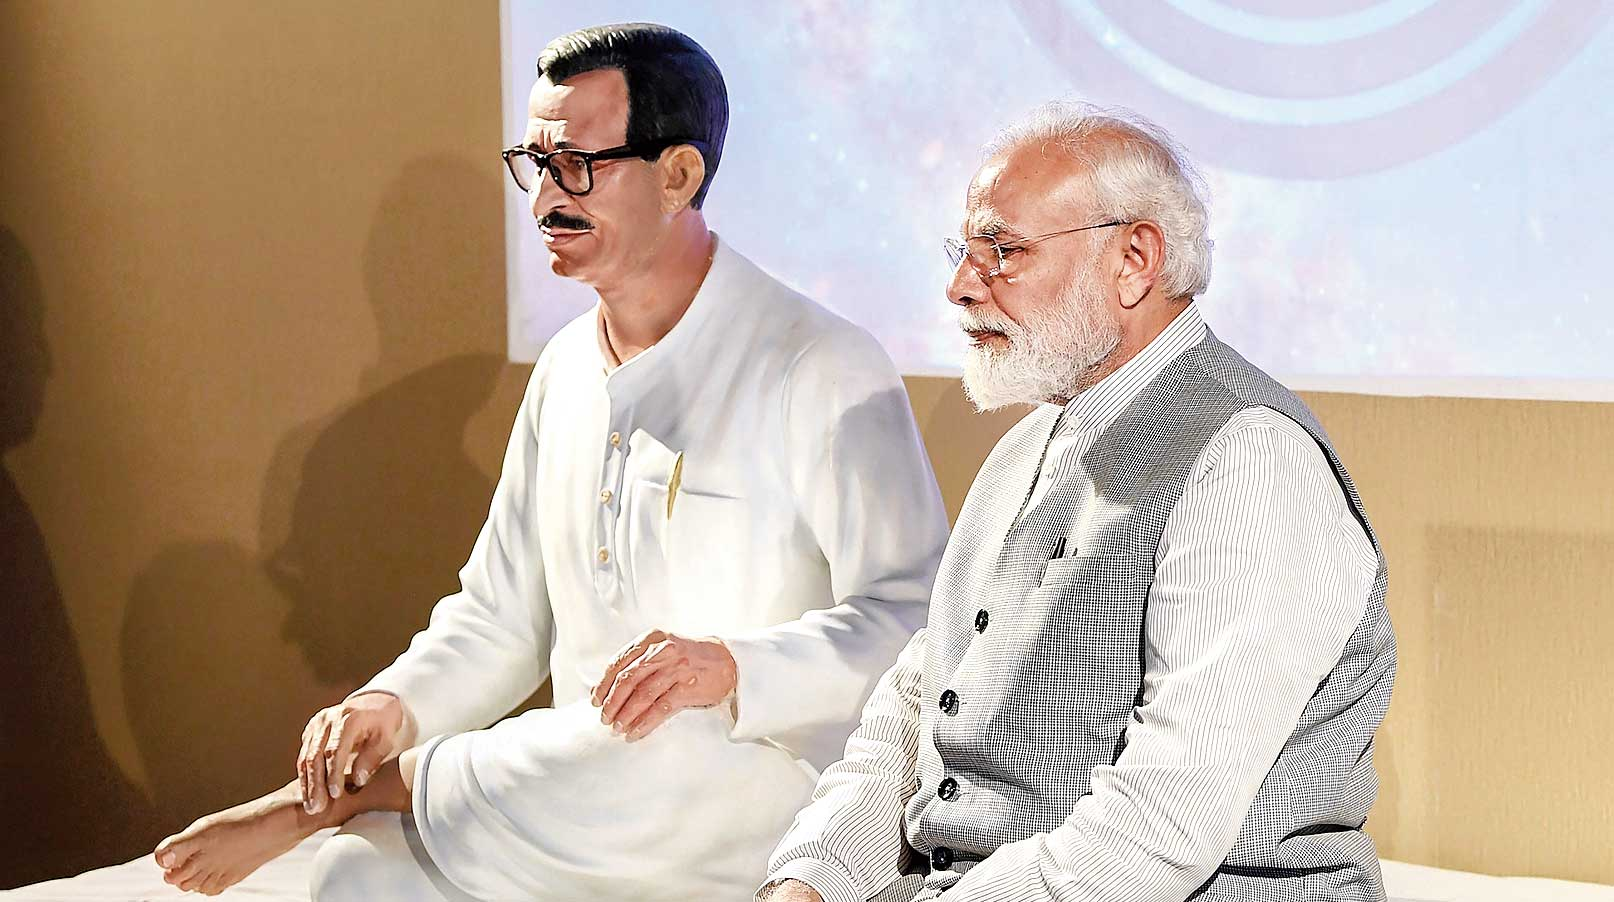 Narendra Modi beside the statue of Pandit Deendayal Upadhyaya in Greater Noida on Saturday. Modi inaugurated an archaeology institute named after the RSS leader.